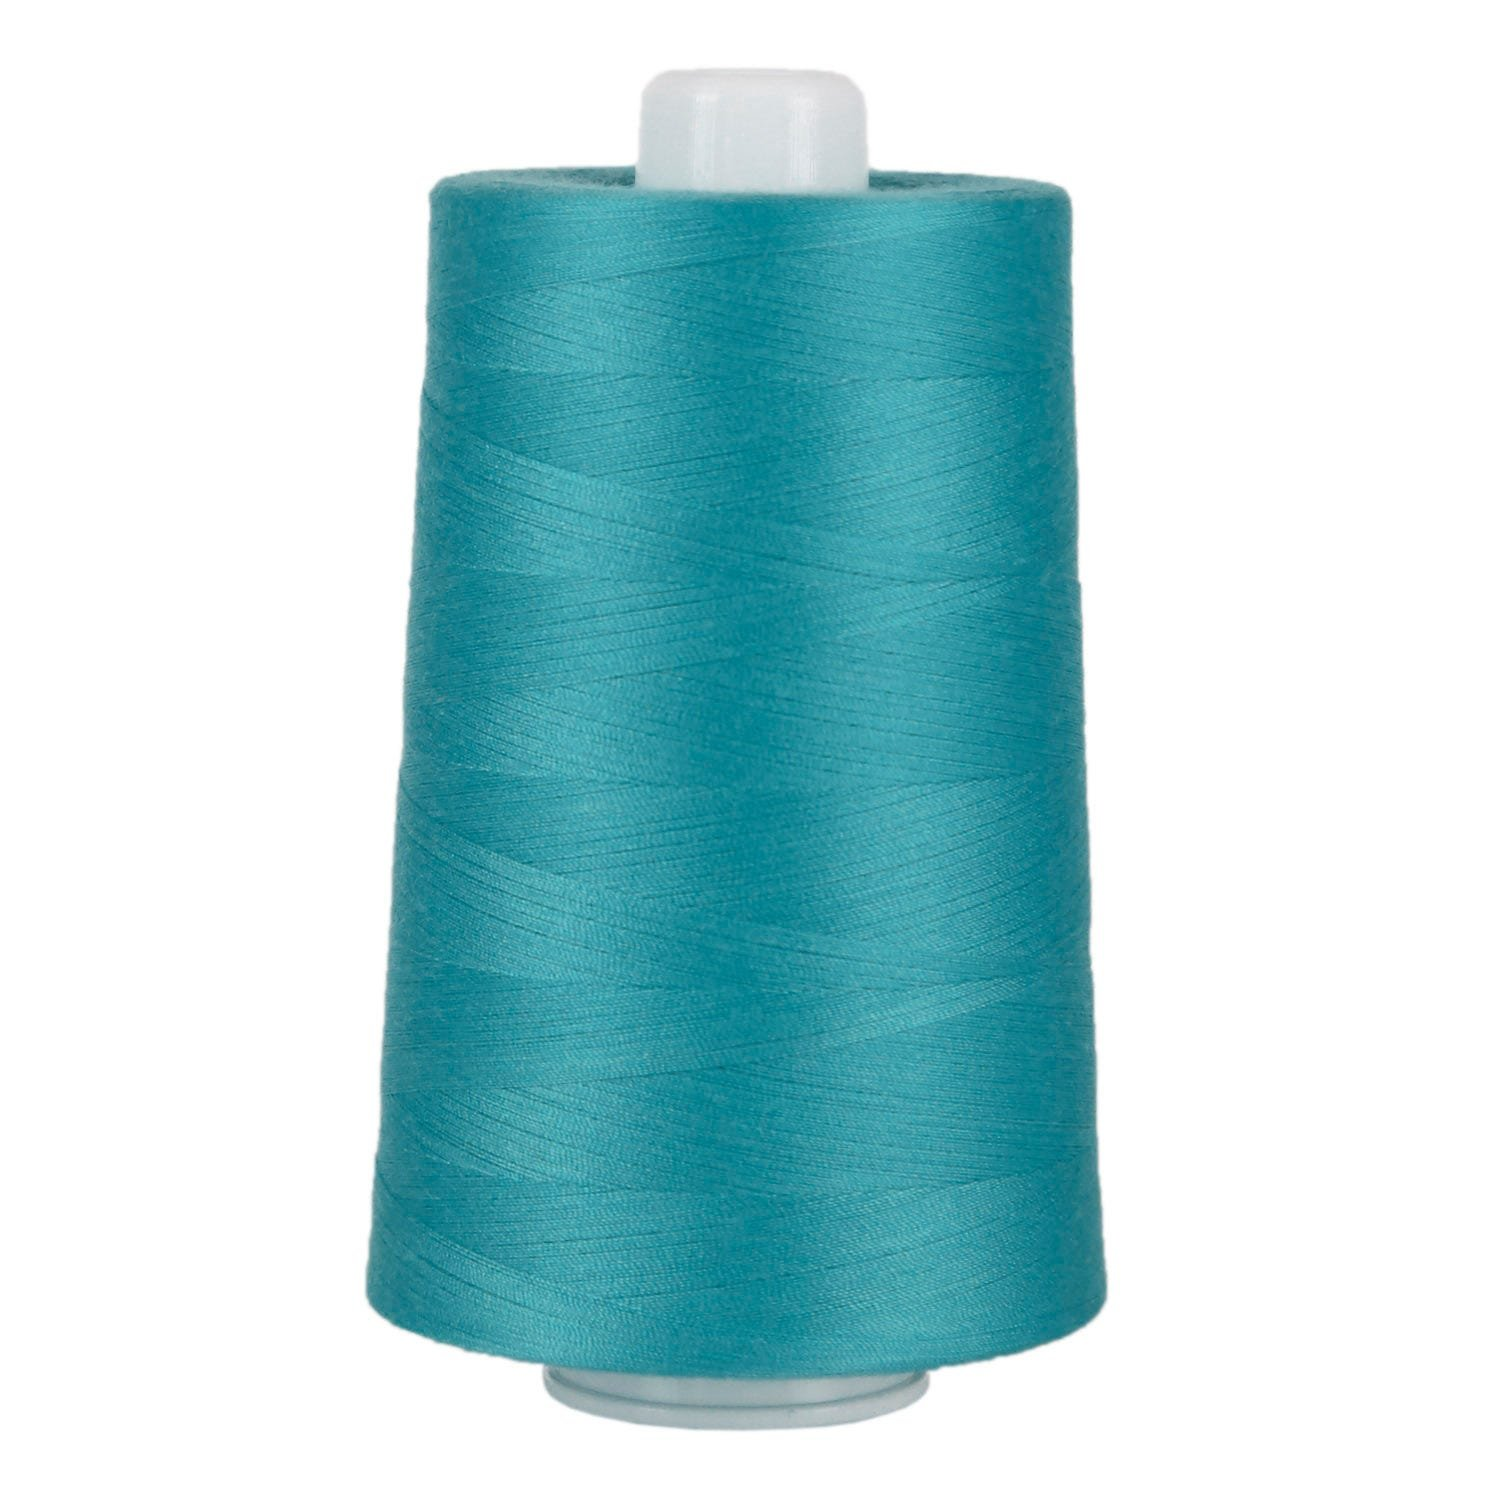 OMNI Polyester Thread 40 wt  6000 yds 3090 Med Turquoise by Superior